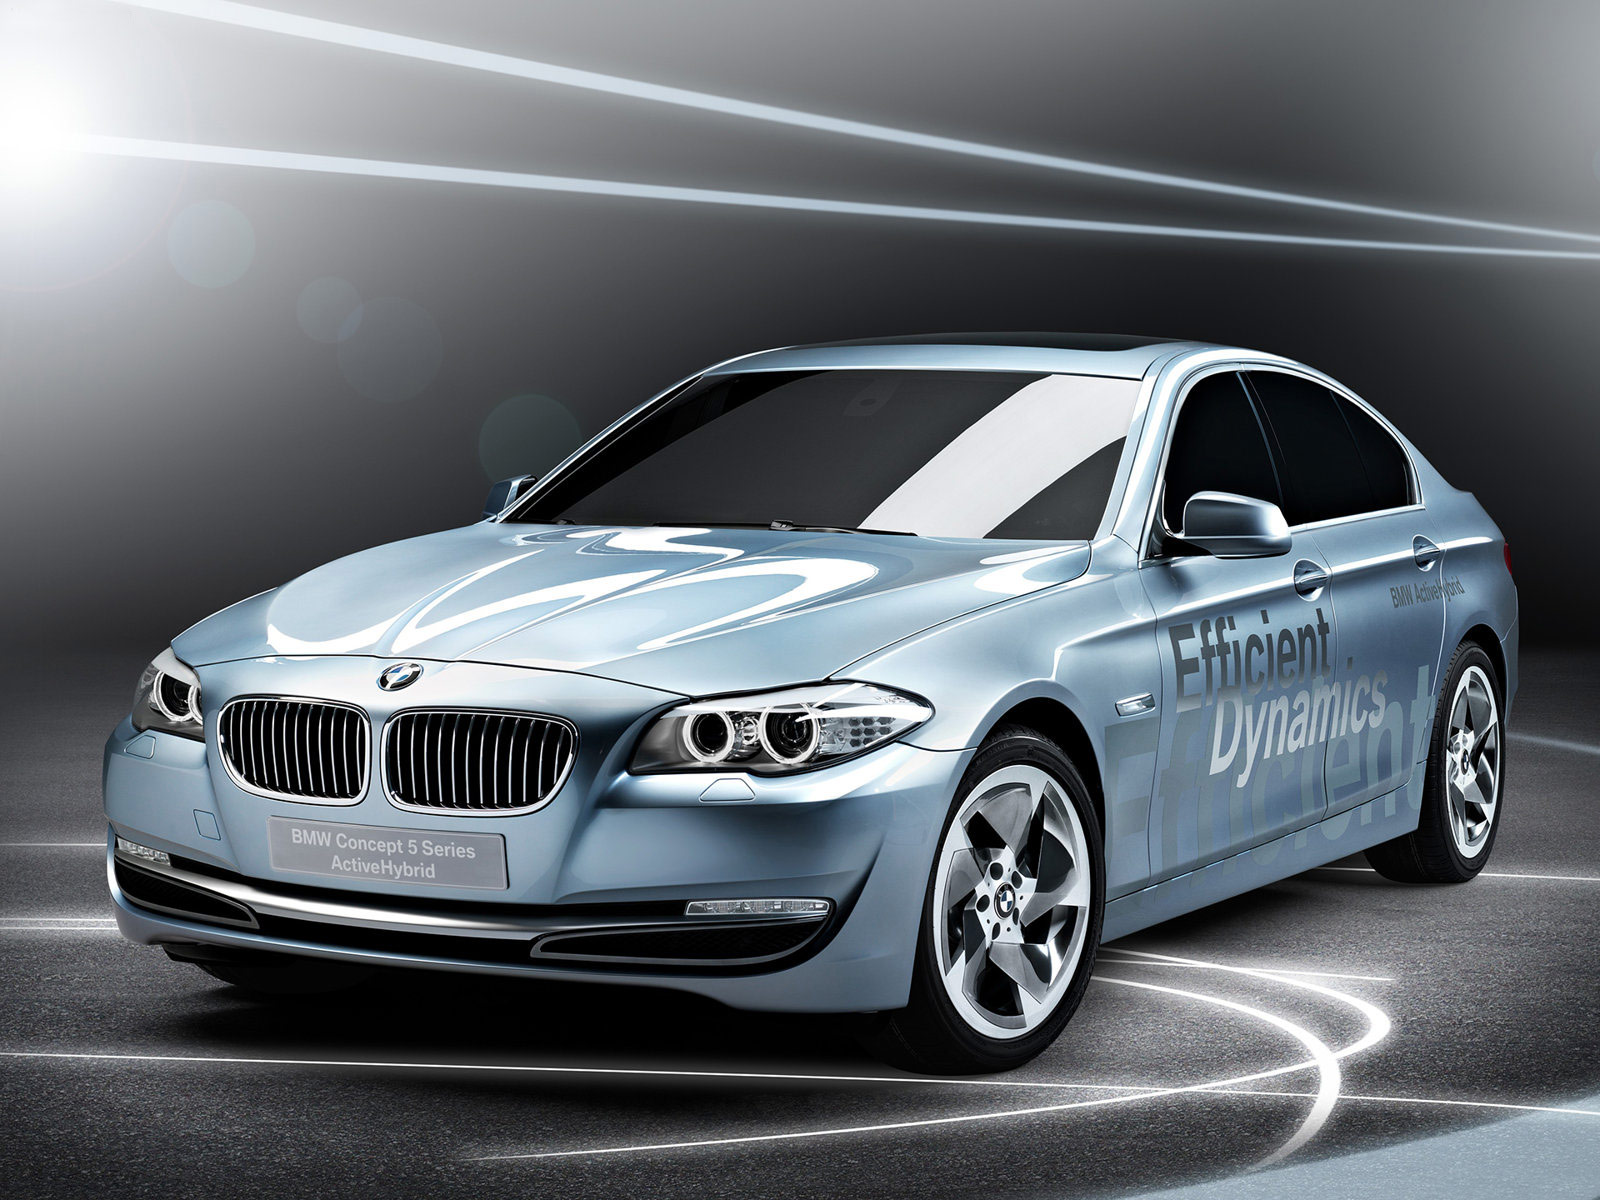 2010 Bmw 5 Series Activehybrid Concept Auto Insurance